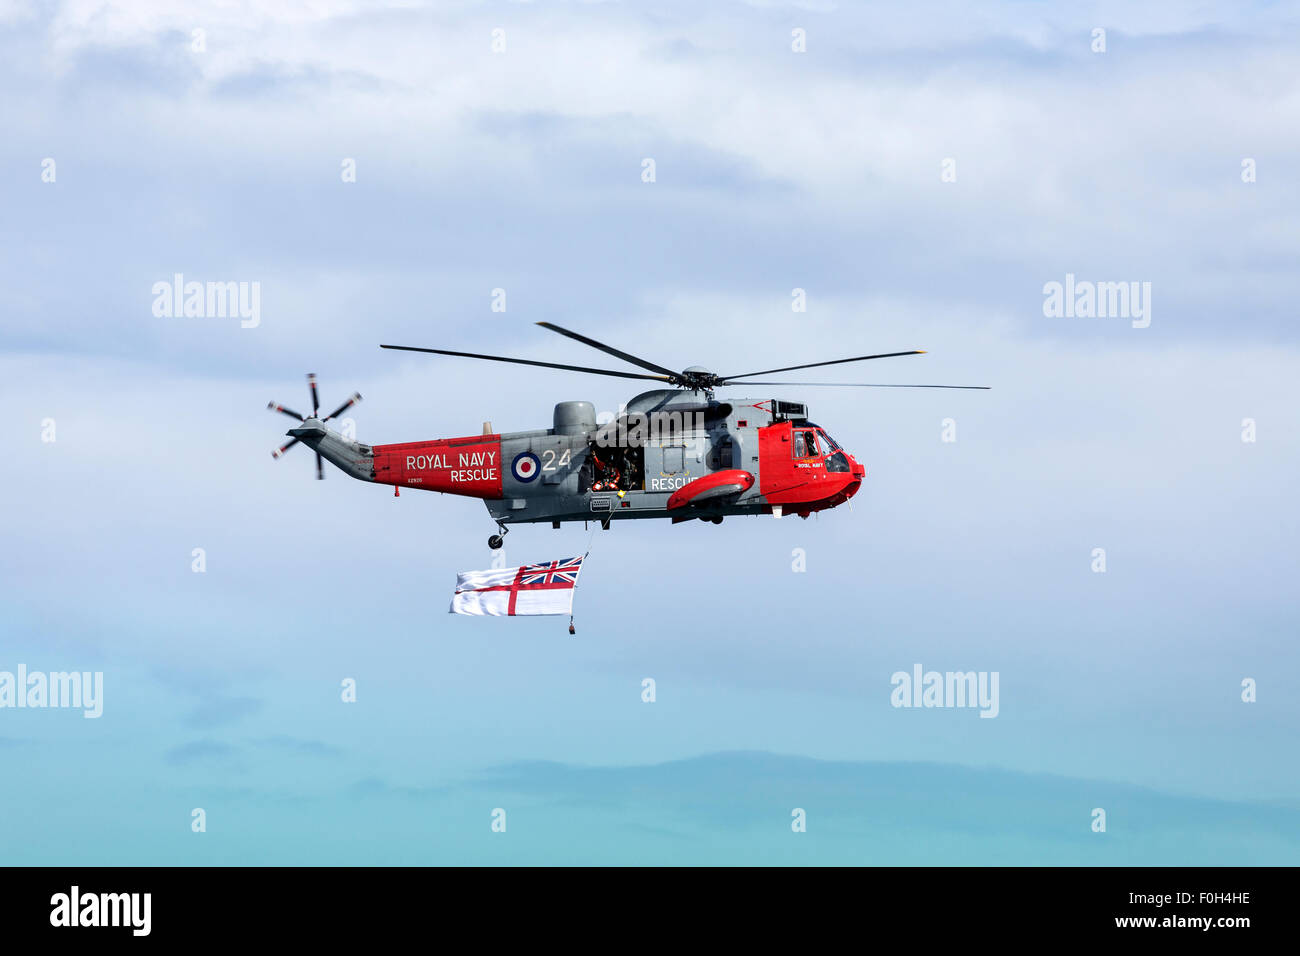 A Royal Navy Search and Rescue helicopter flying the White Ensign off the northeast coast of the United Kingdom. - Stock Image